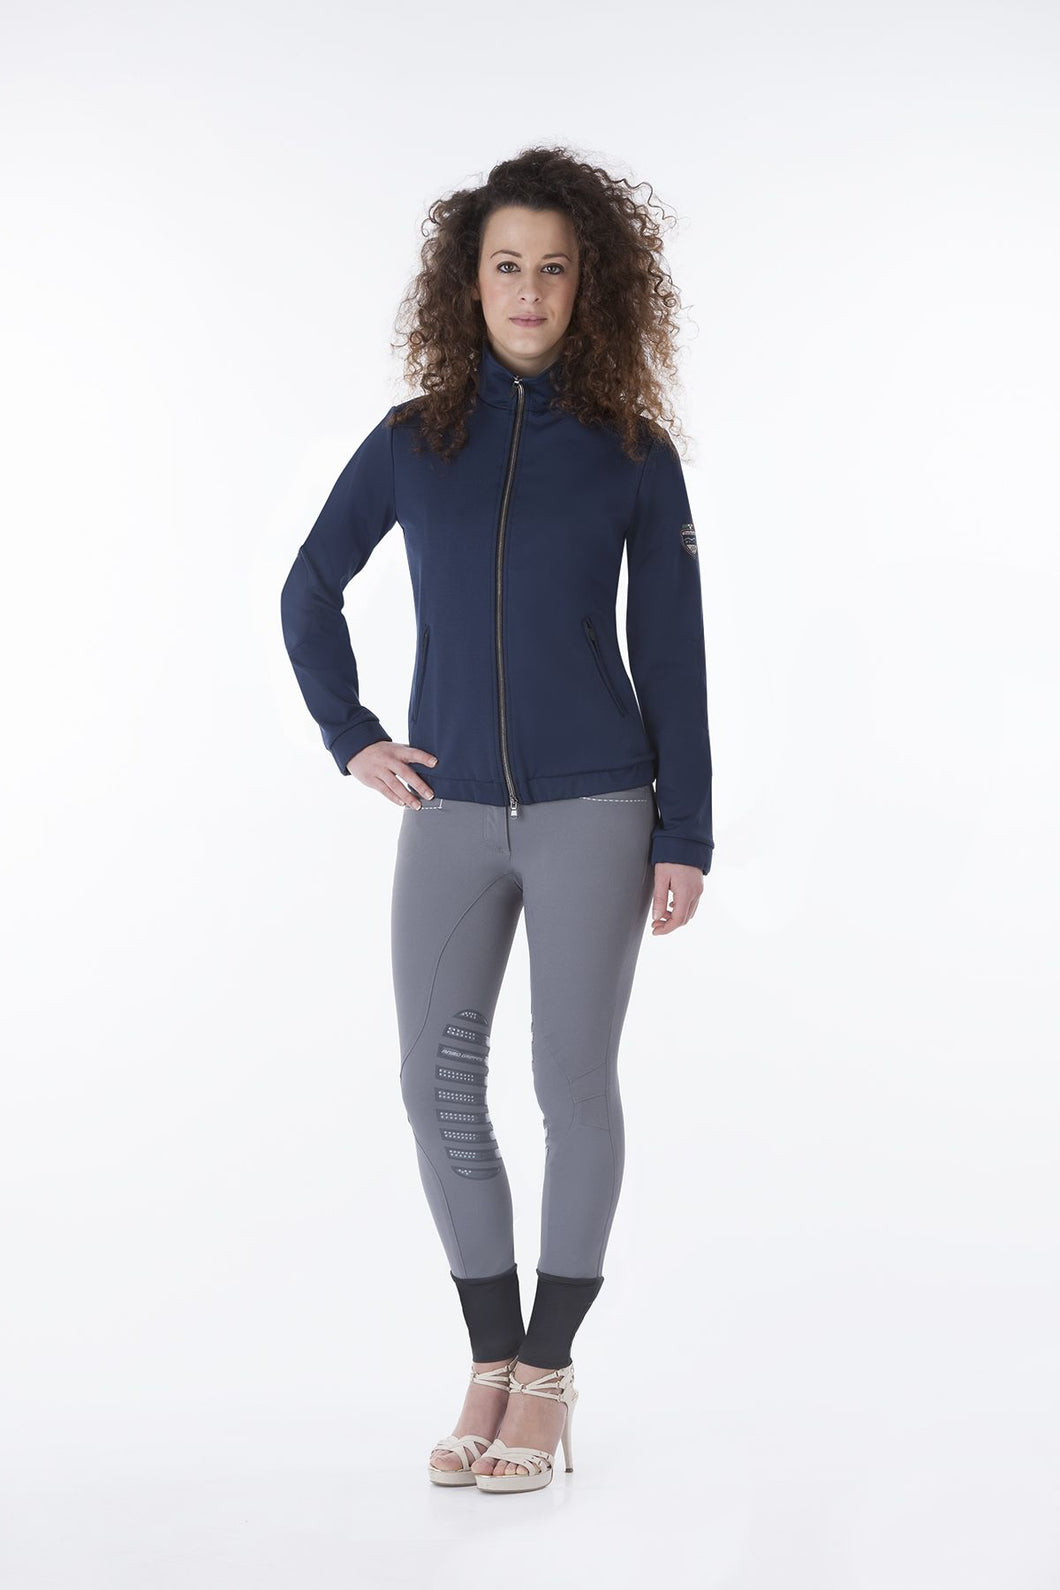 Noguarda Breeches - Reform Sport Equestrian Clothing